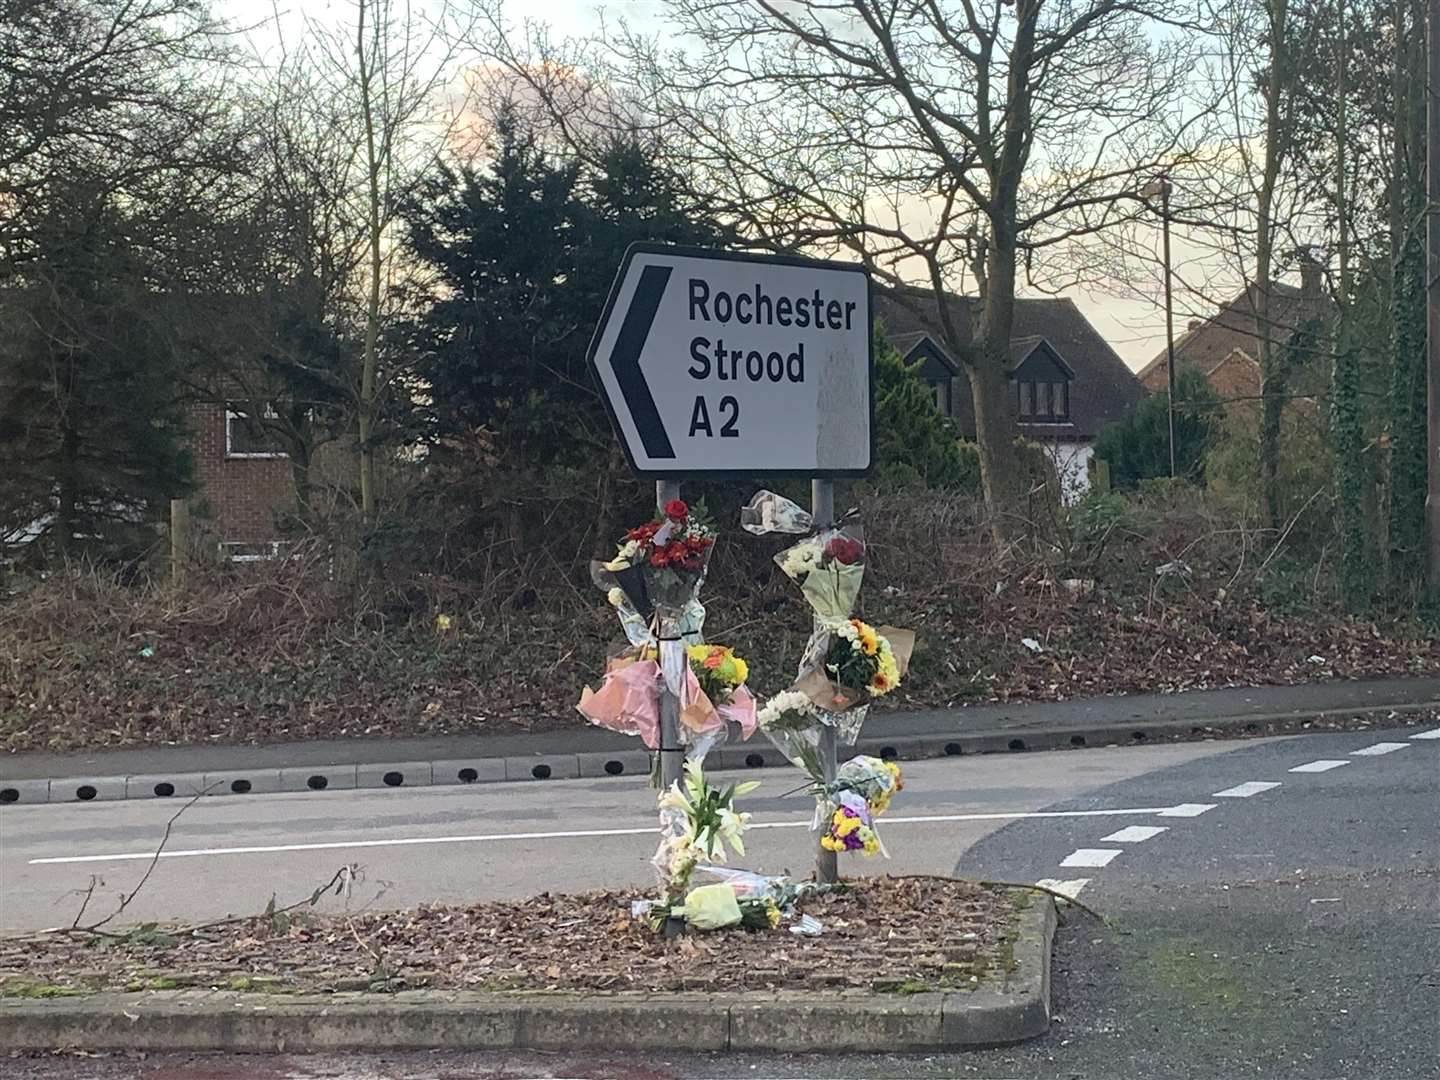 Flowers were attached to a sign by the Three Crutches roundabout